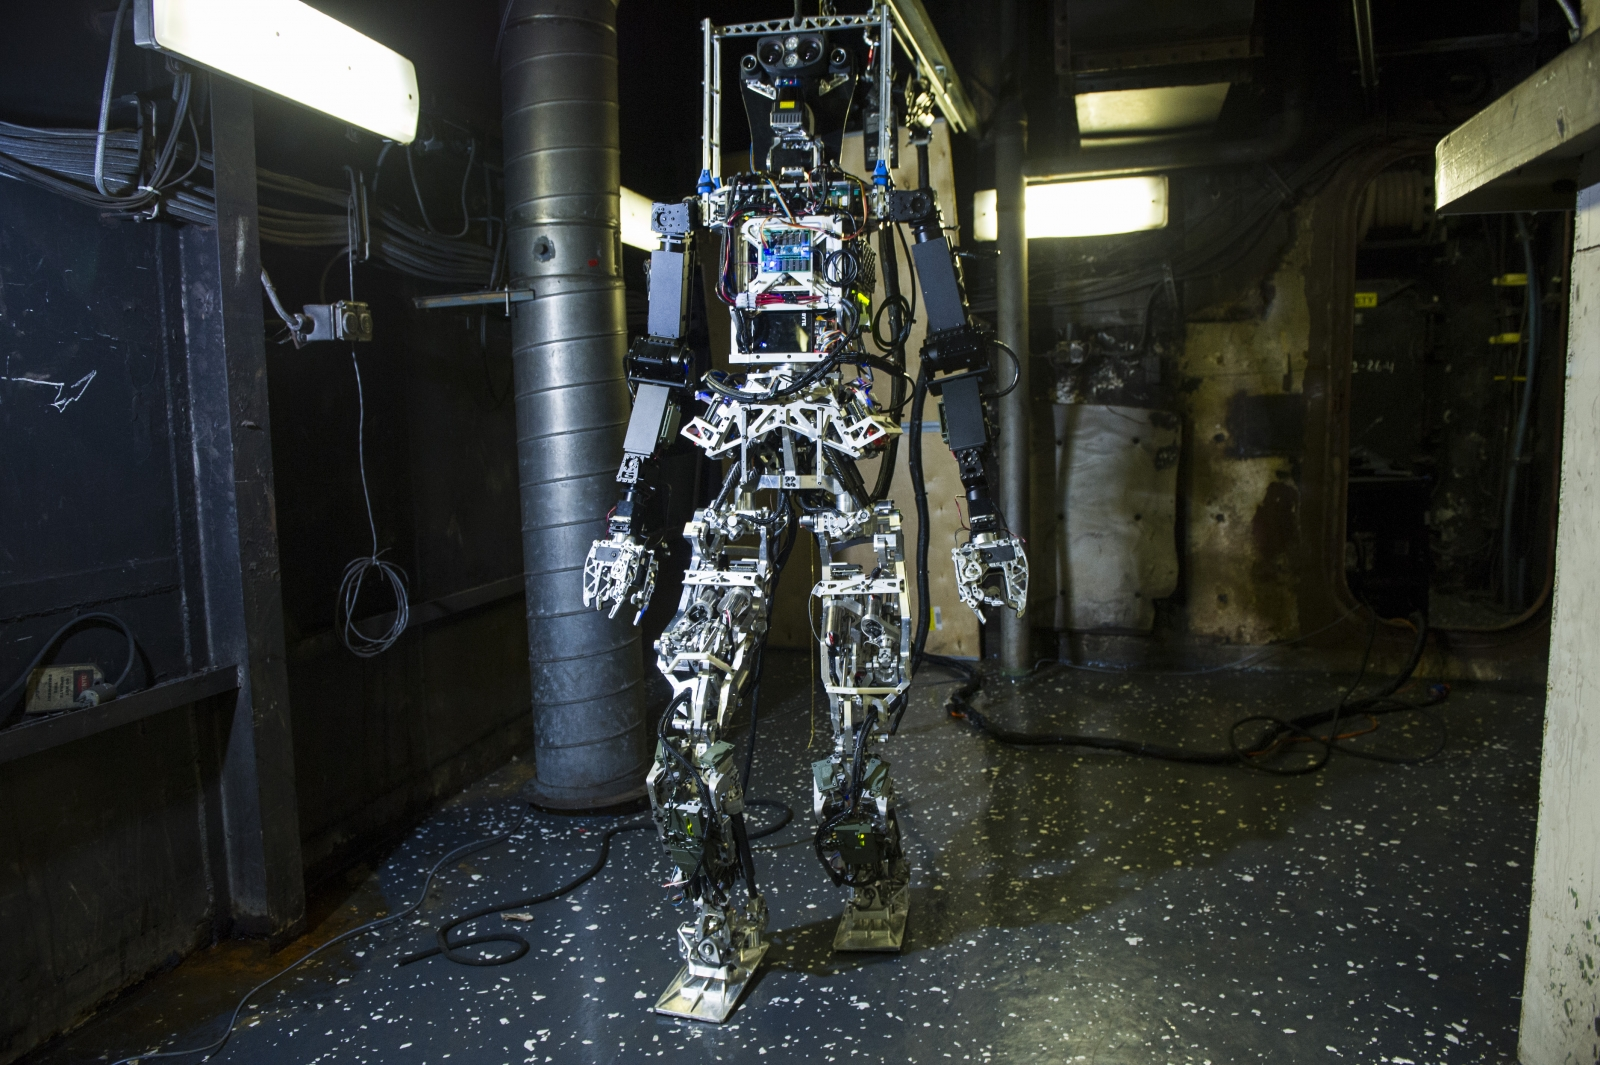 Meet SAFFiR - a new humanoid robot built for the US Navy that can walk, climb, open things and navigate obstacles just like a human